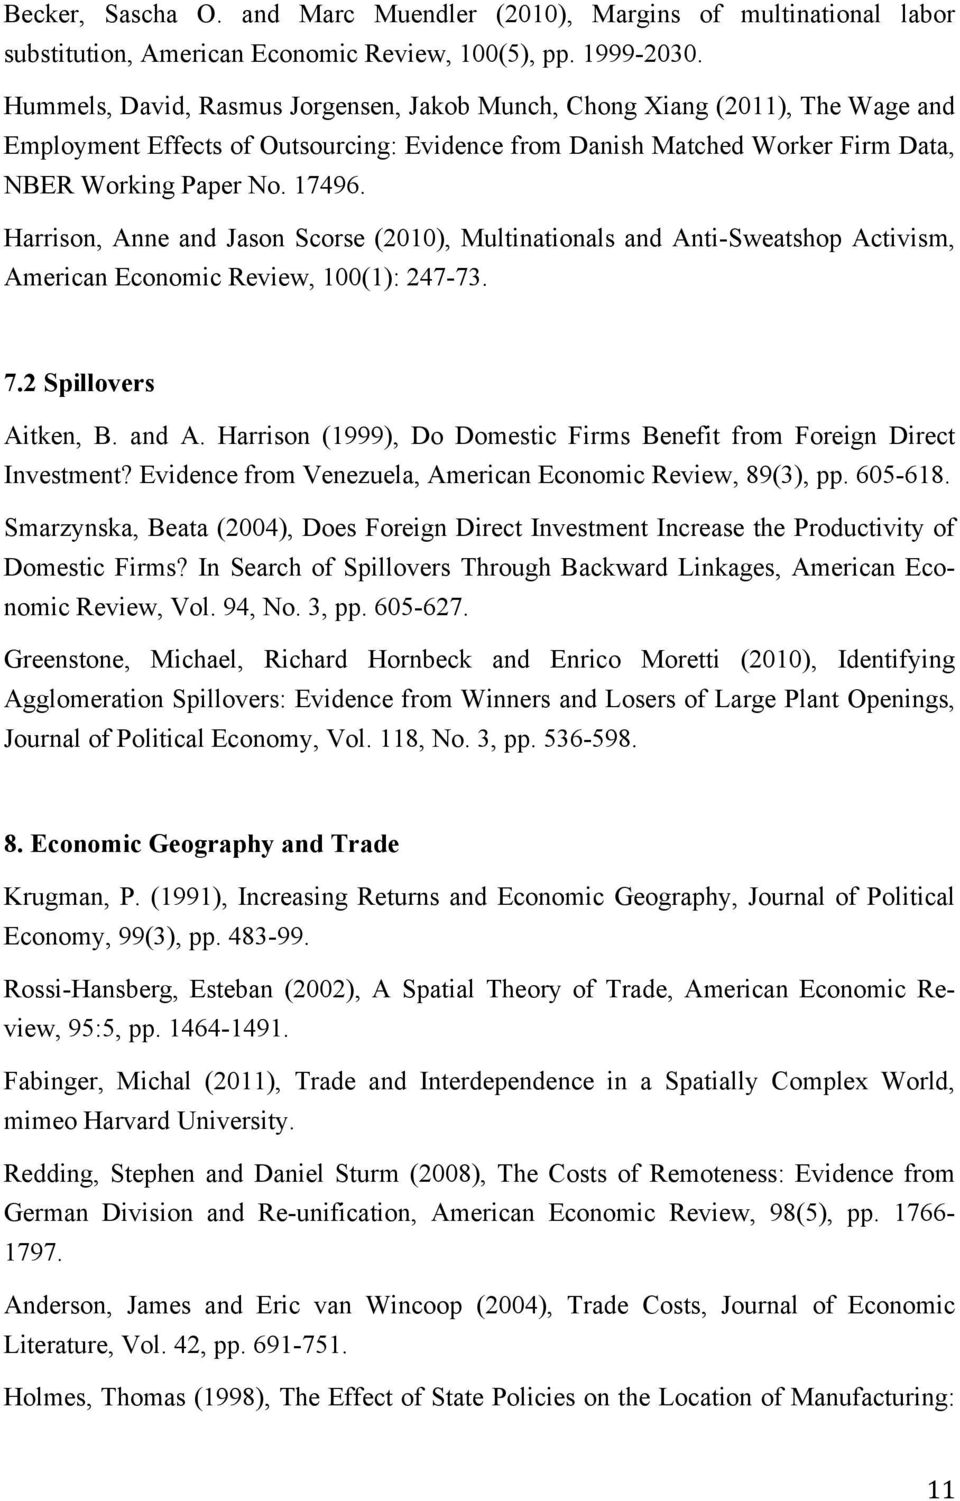 Harrison, Anne and Jason Scorse (2010), Multinationals and Anti-Sweatshop Activism, American Economic Review, 100(1): 247-73. 7.2 Spillovers Aitken, B. and A. Harrison (1999), Do Domestic Firms Benefit from Foreign Direct Investment?